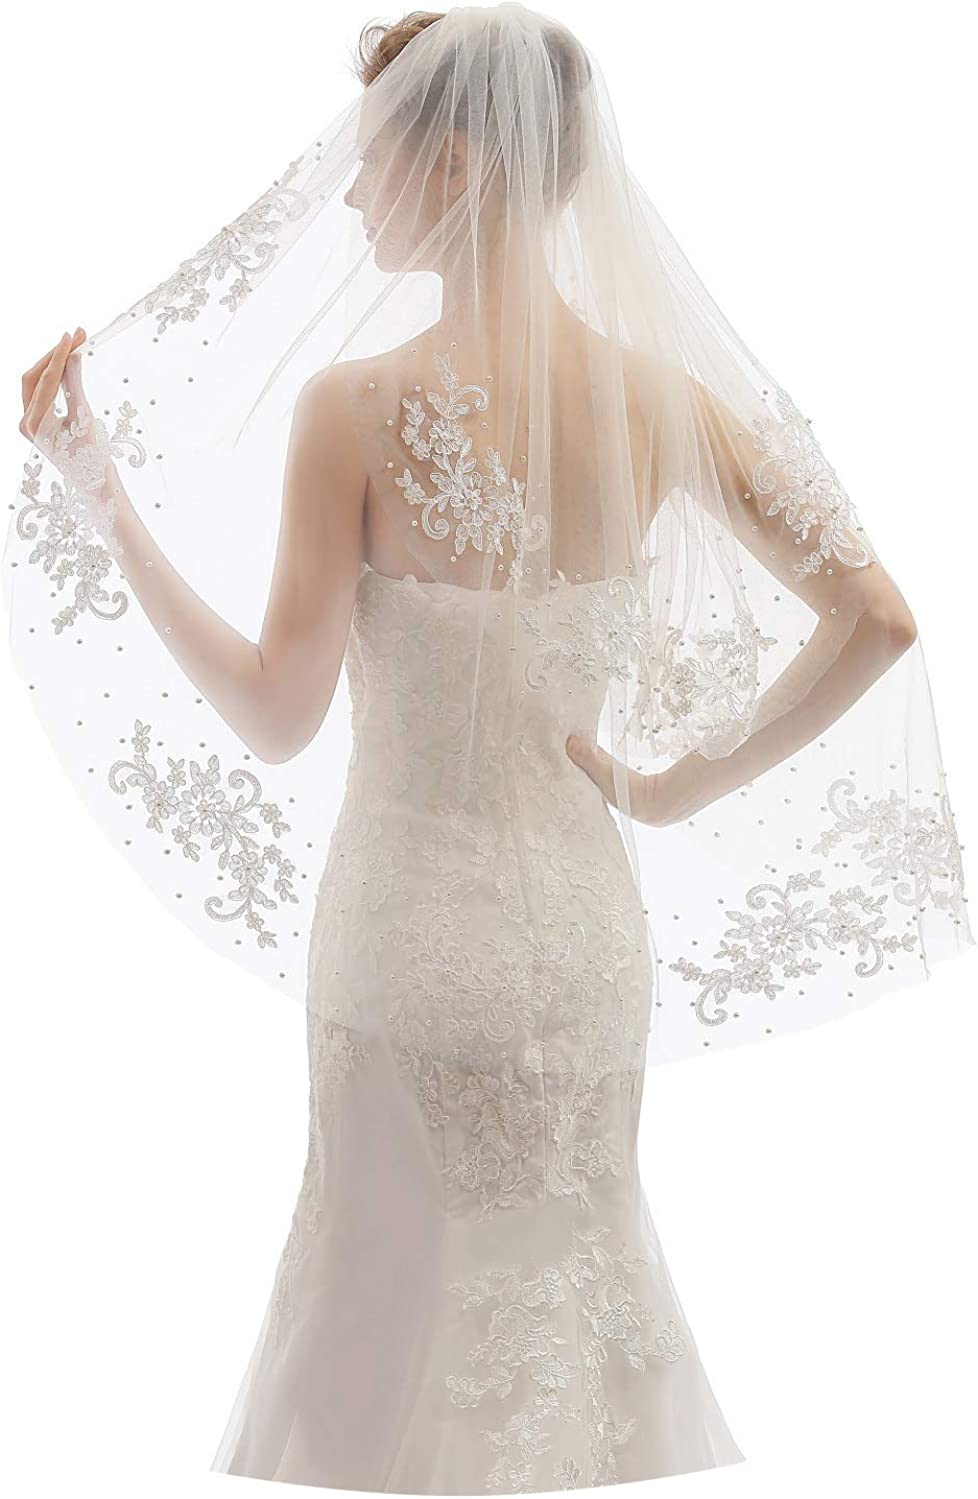 Elawbty Womens 2 Tier Fingertip Length Short Lace Pearl Wedding Bridal Veil With Comb X05